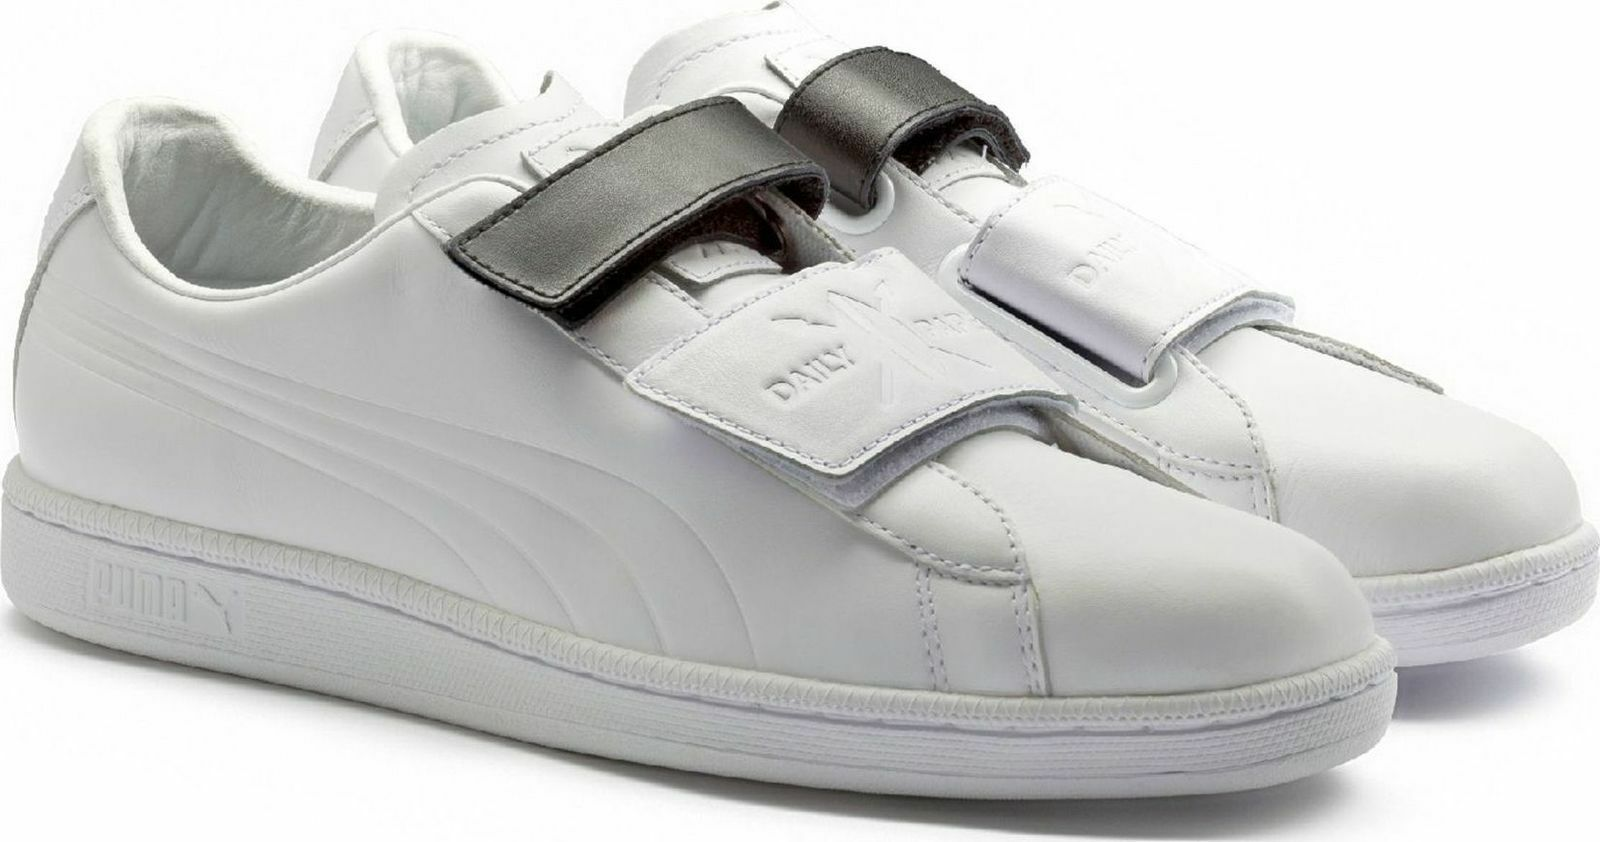 NIB MEN'S PUMA WHITE LEATHER MATCH STRAP LOW TOP DAILY PAPER 8, 9, 10, 11 149Price reduction